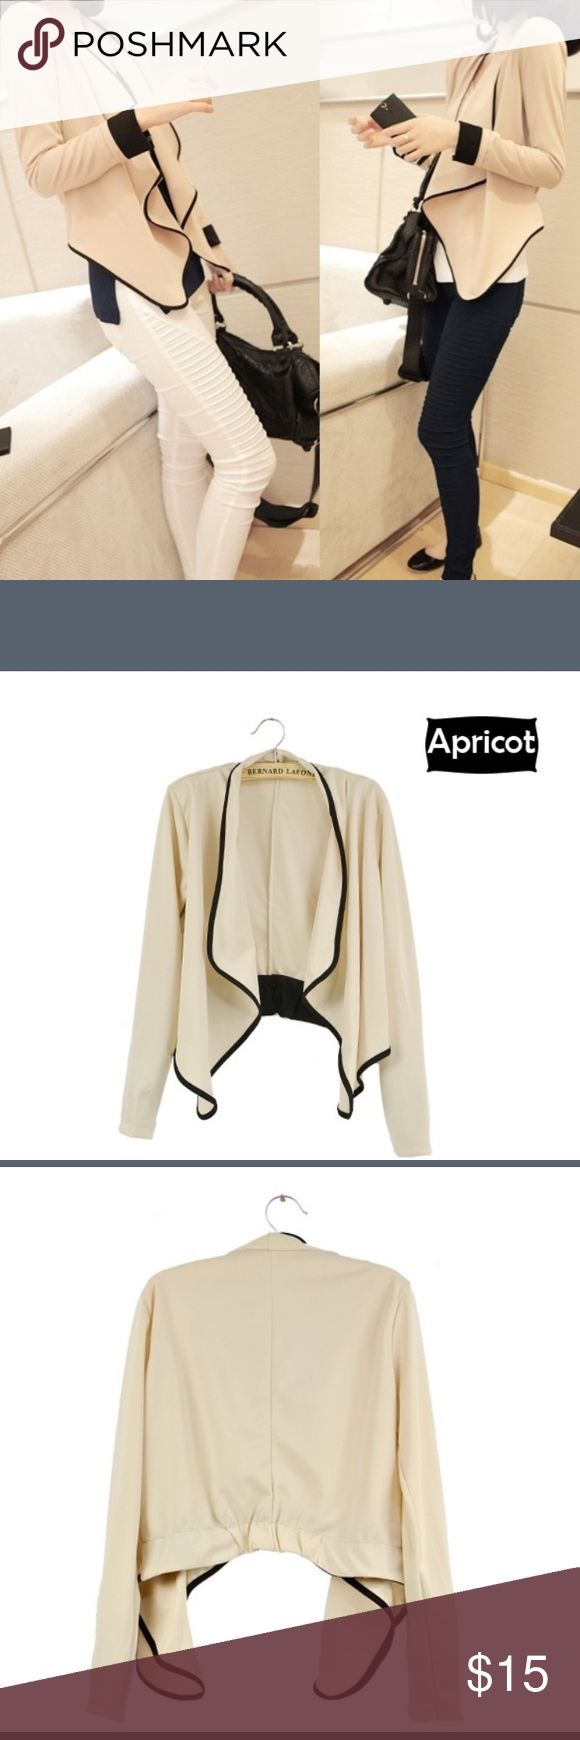 Long sleeve jacket Apricot with black trim, cotton blend trendy spring blazer. ViVi Fashion Jackets & Coats